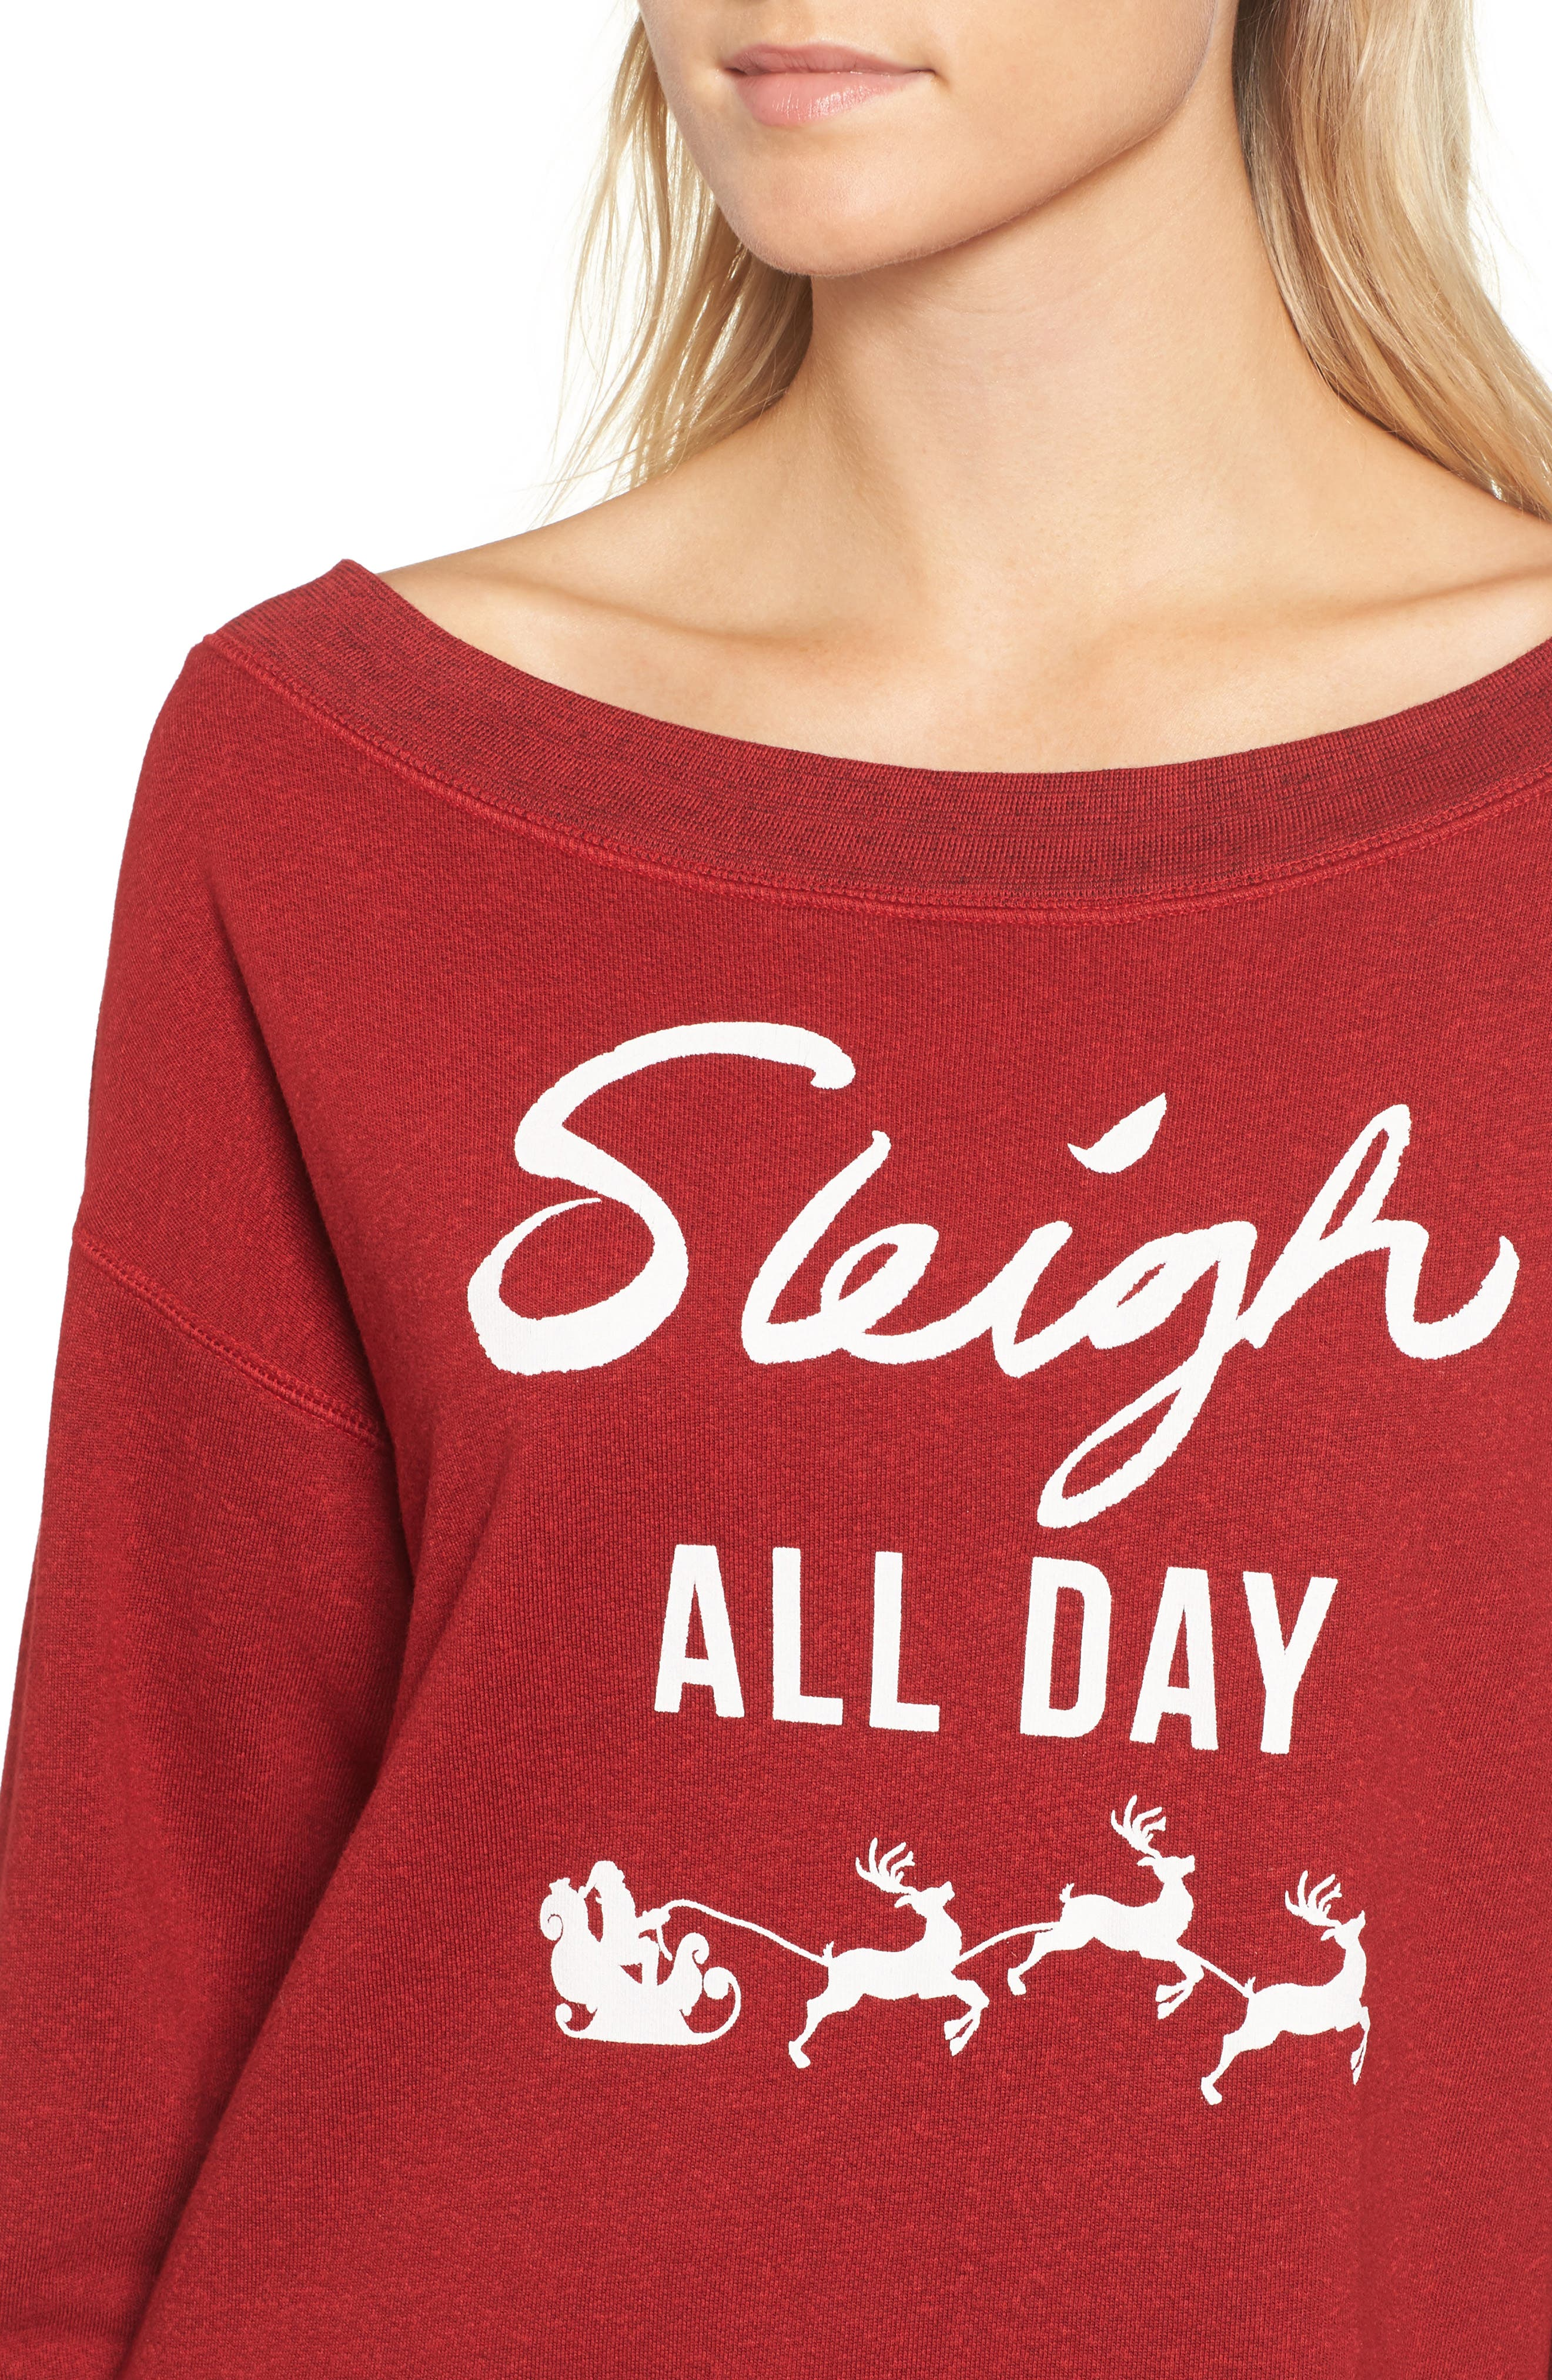 Sleigh All Day Sweatshirt,                             Alternate thumbnail 4, color,                             604